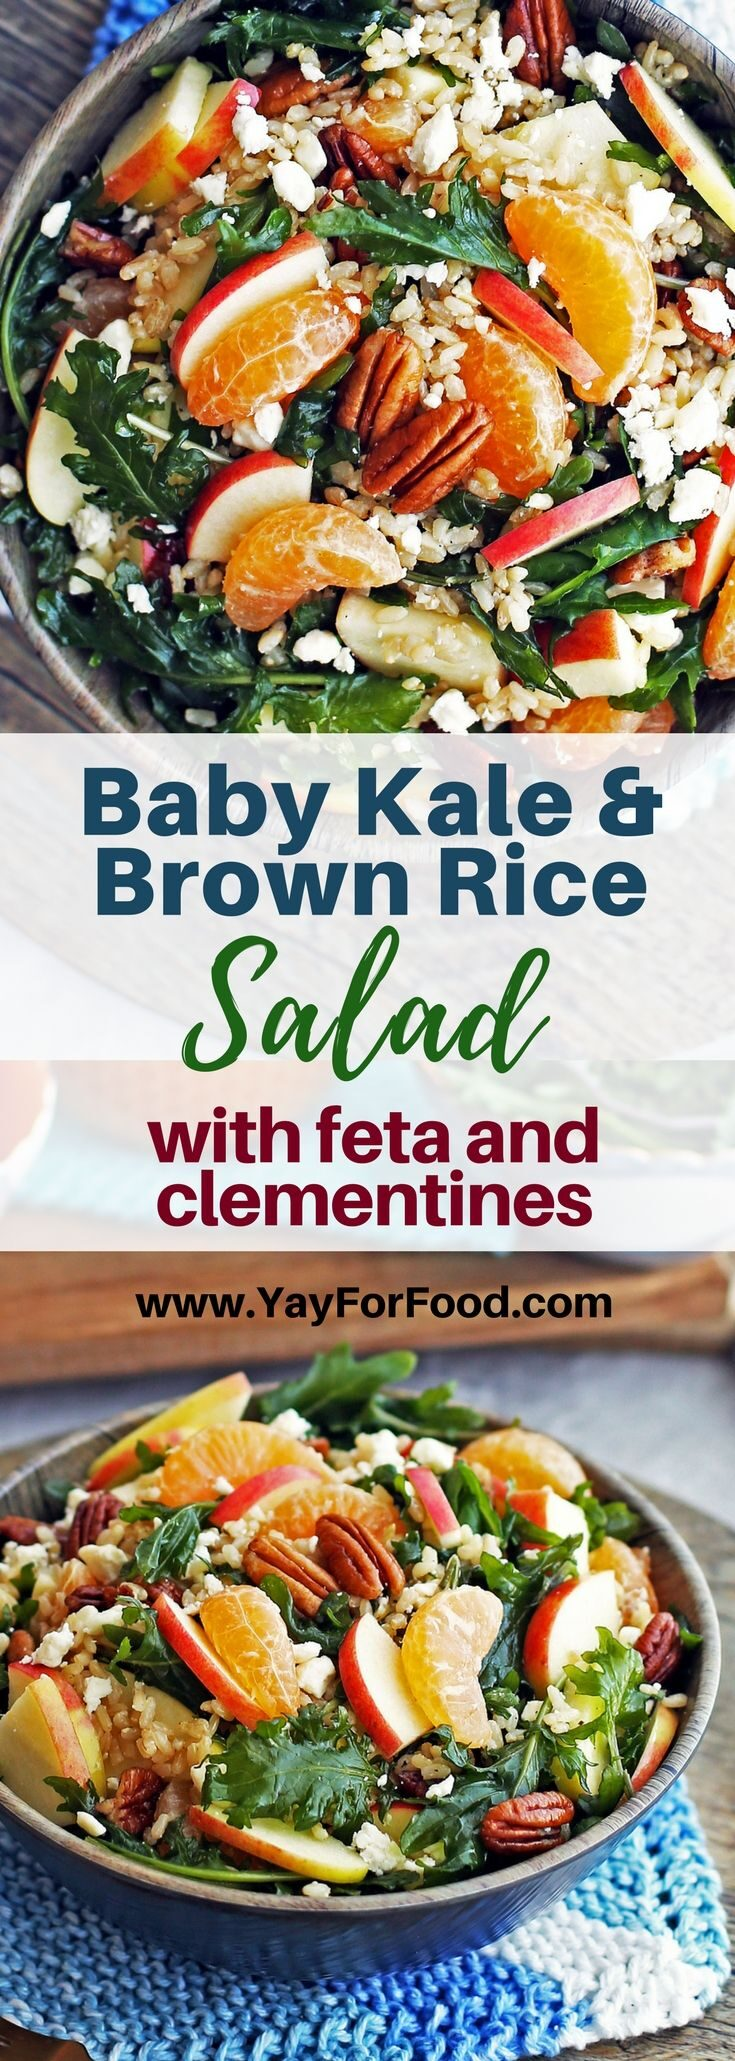 Check out this delicious winter salad featuring fiber-rich brown rice, fresh baby kale, and sweet clementine oranges! Vegetarian and gluten-free too.